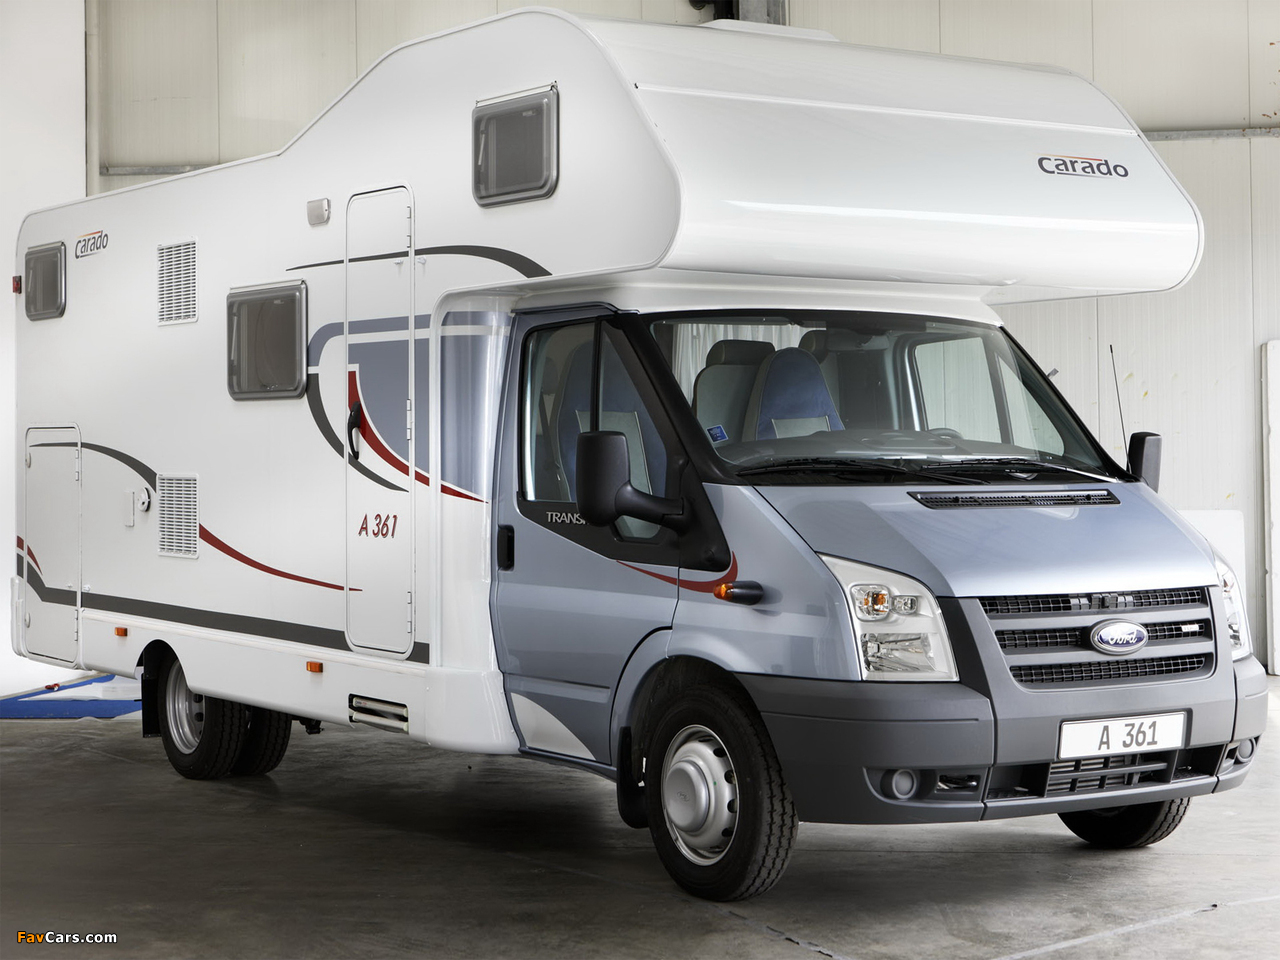 Carado A361 based on Ford Transit 2009 images (1280 x 960)